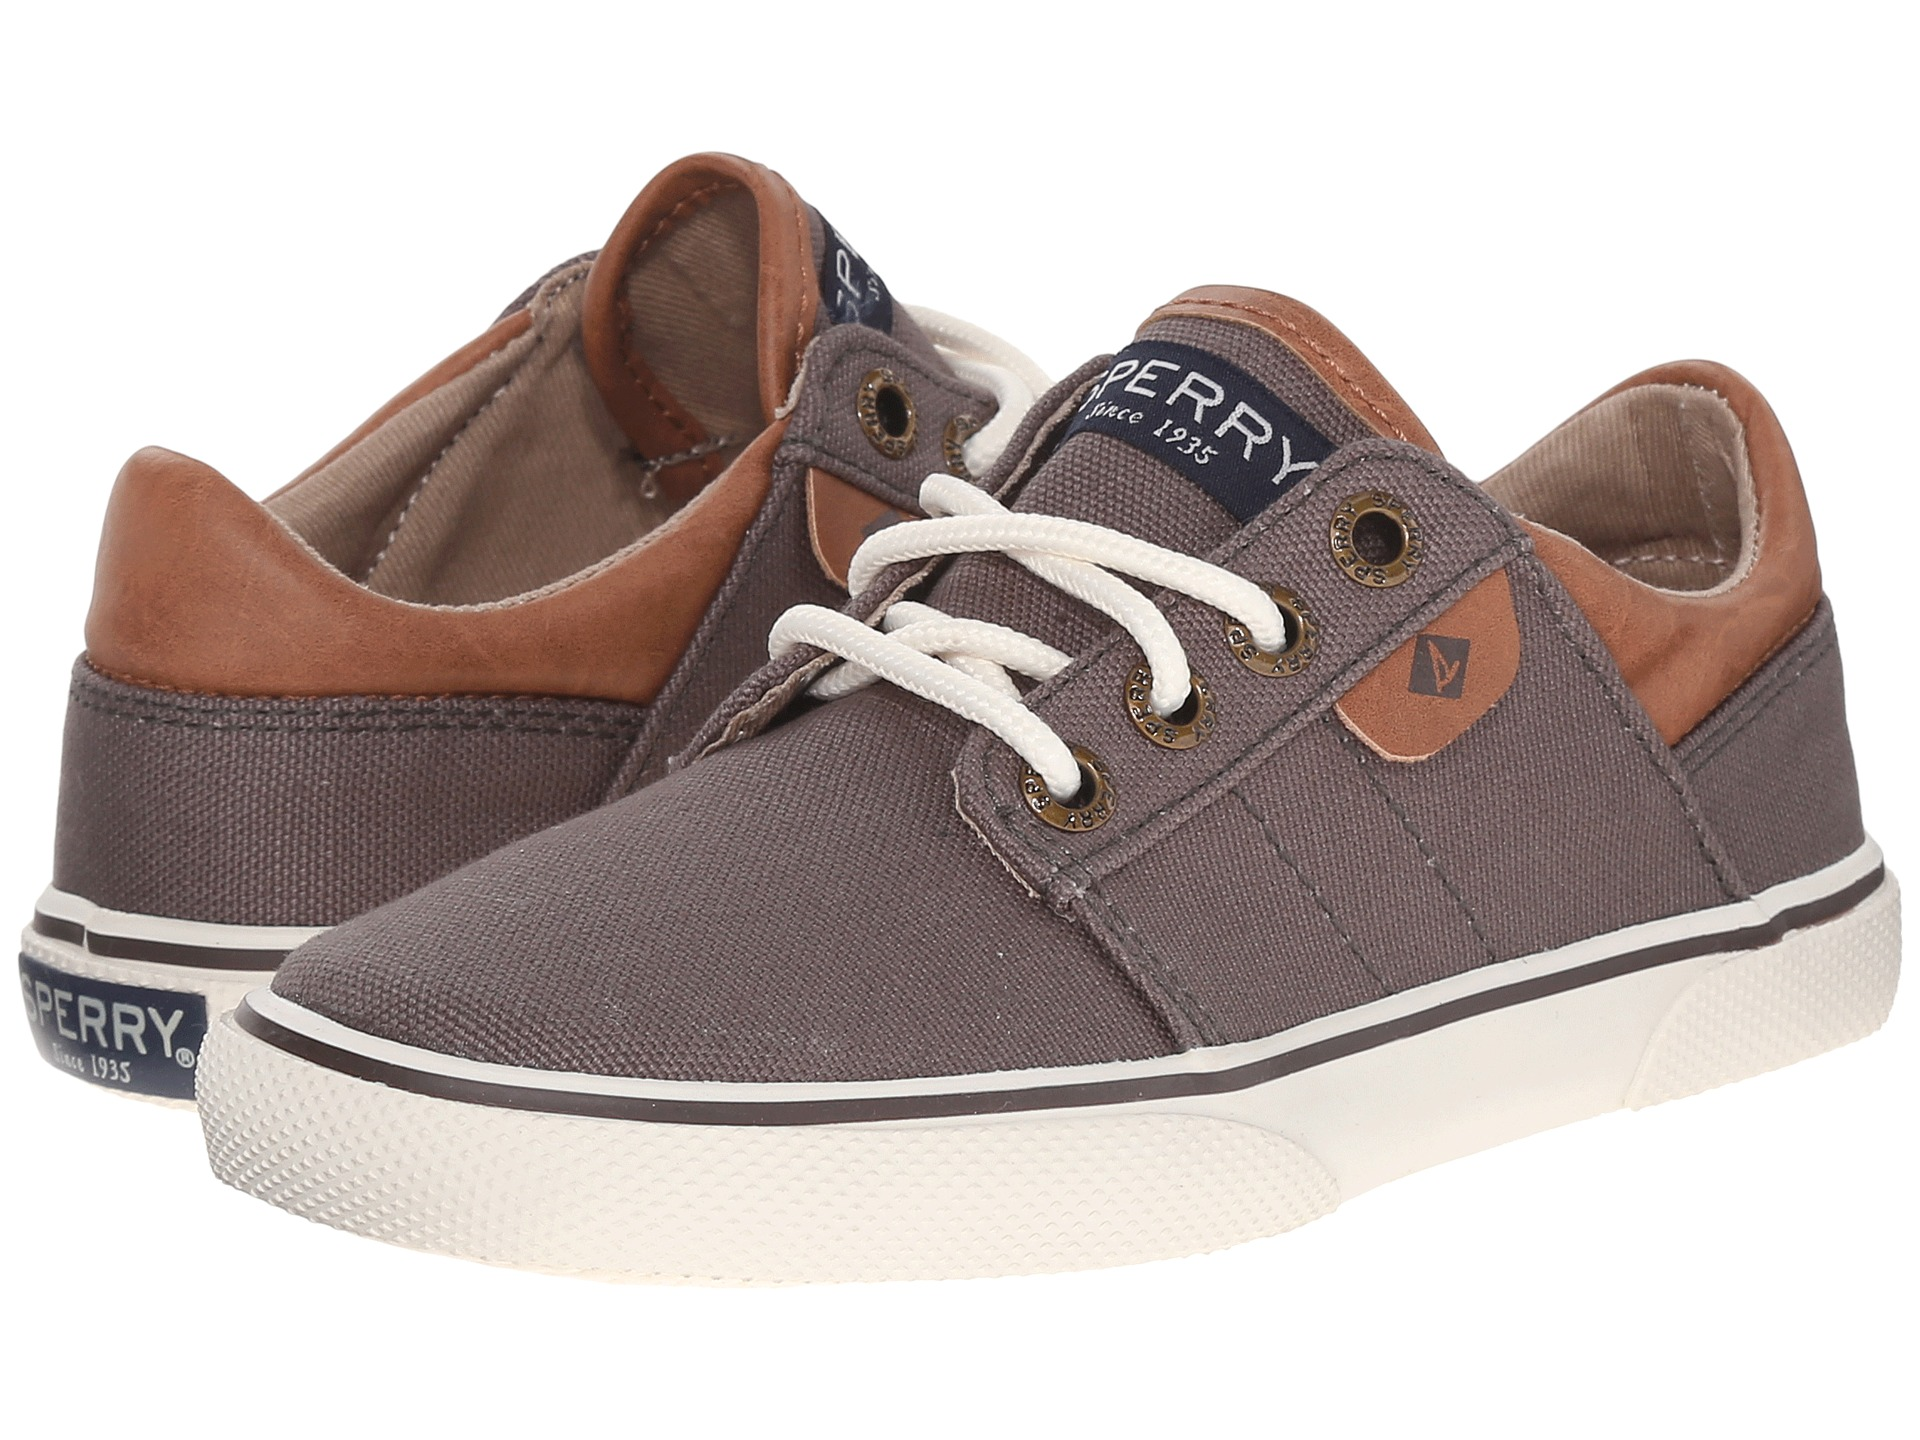 Sperry Kids Shoes Sale